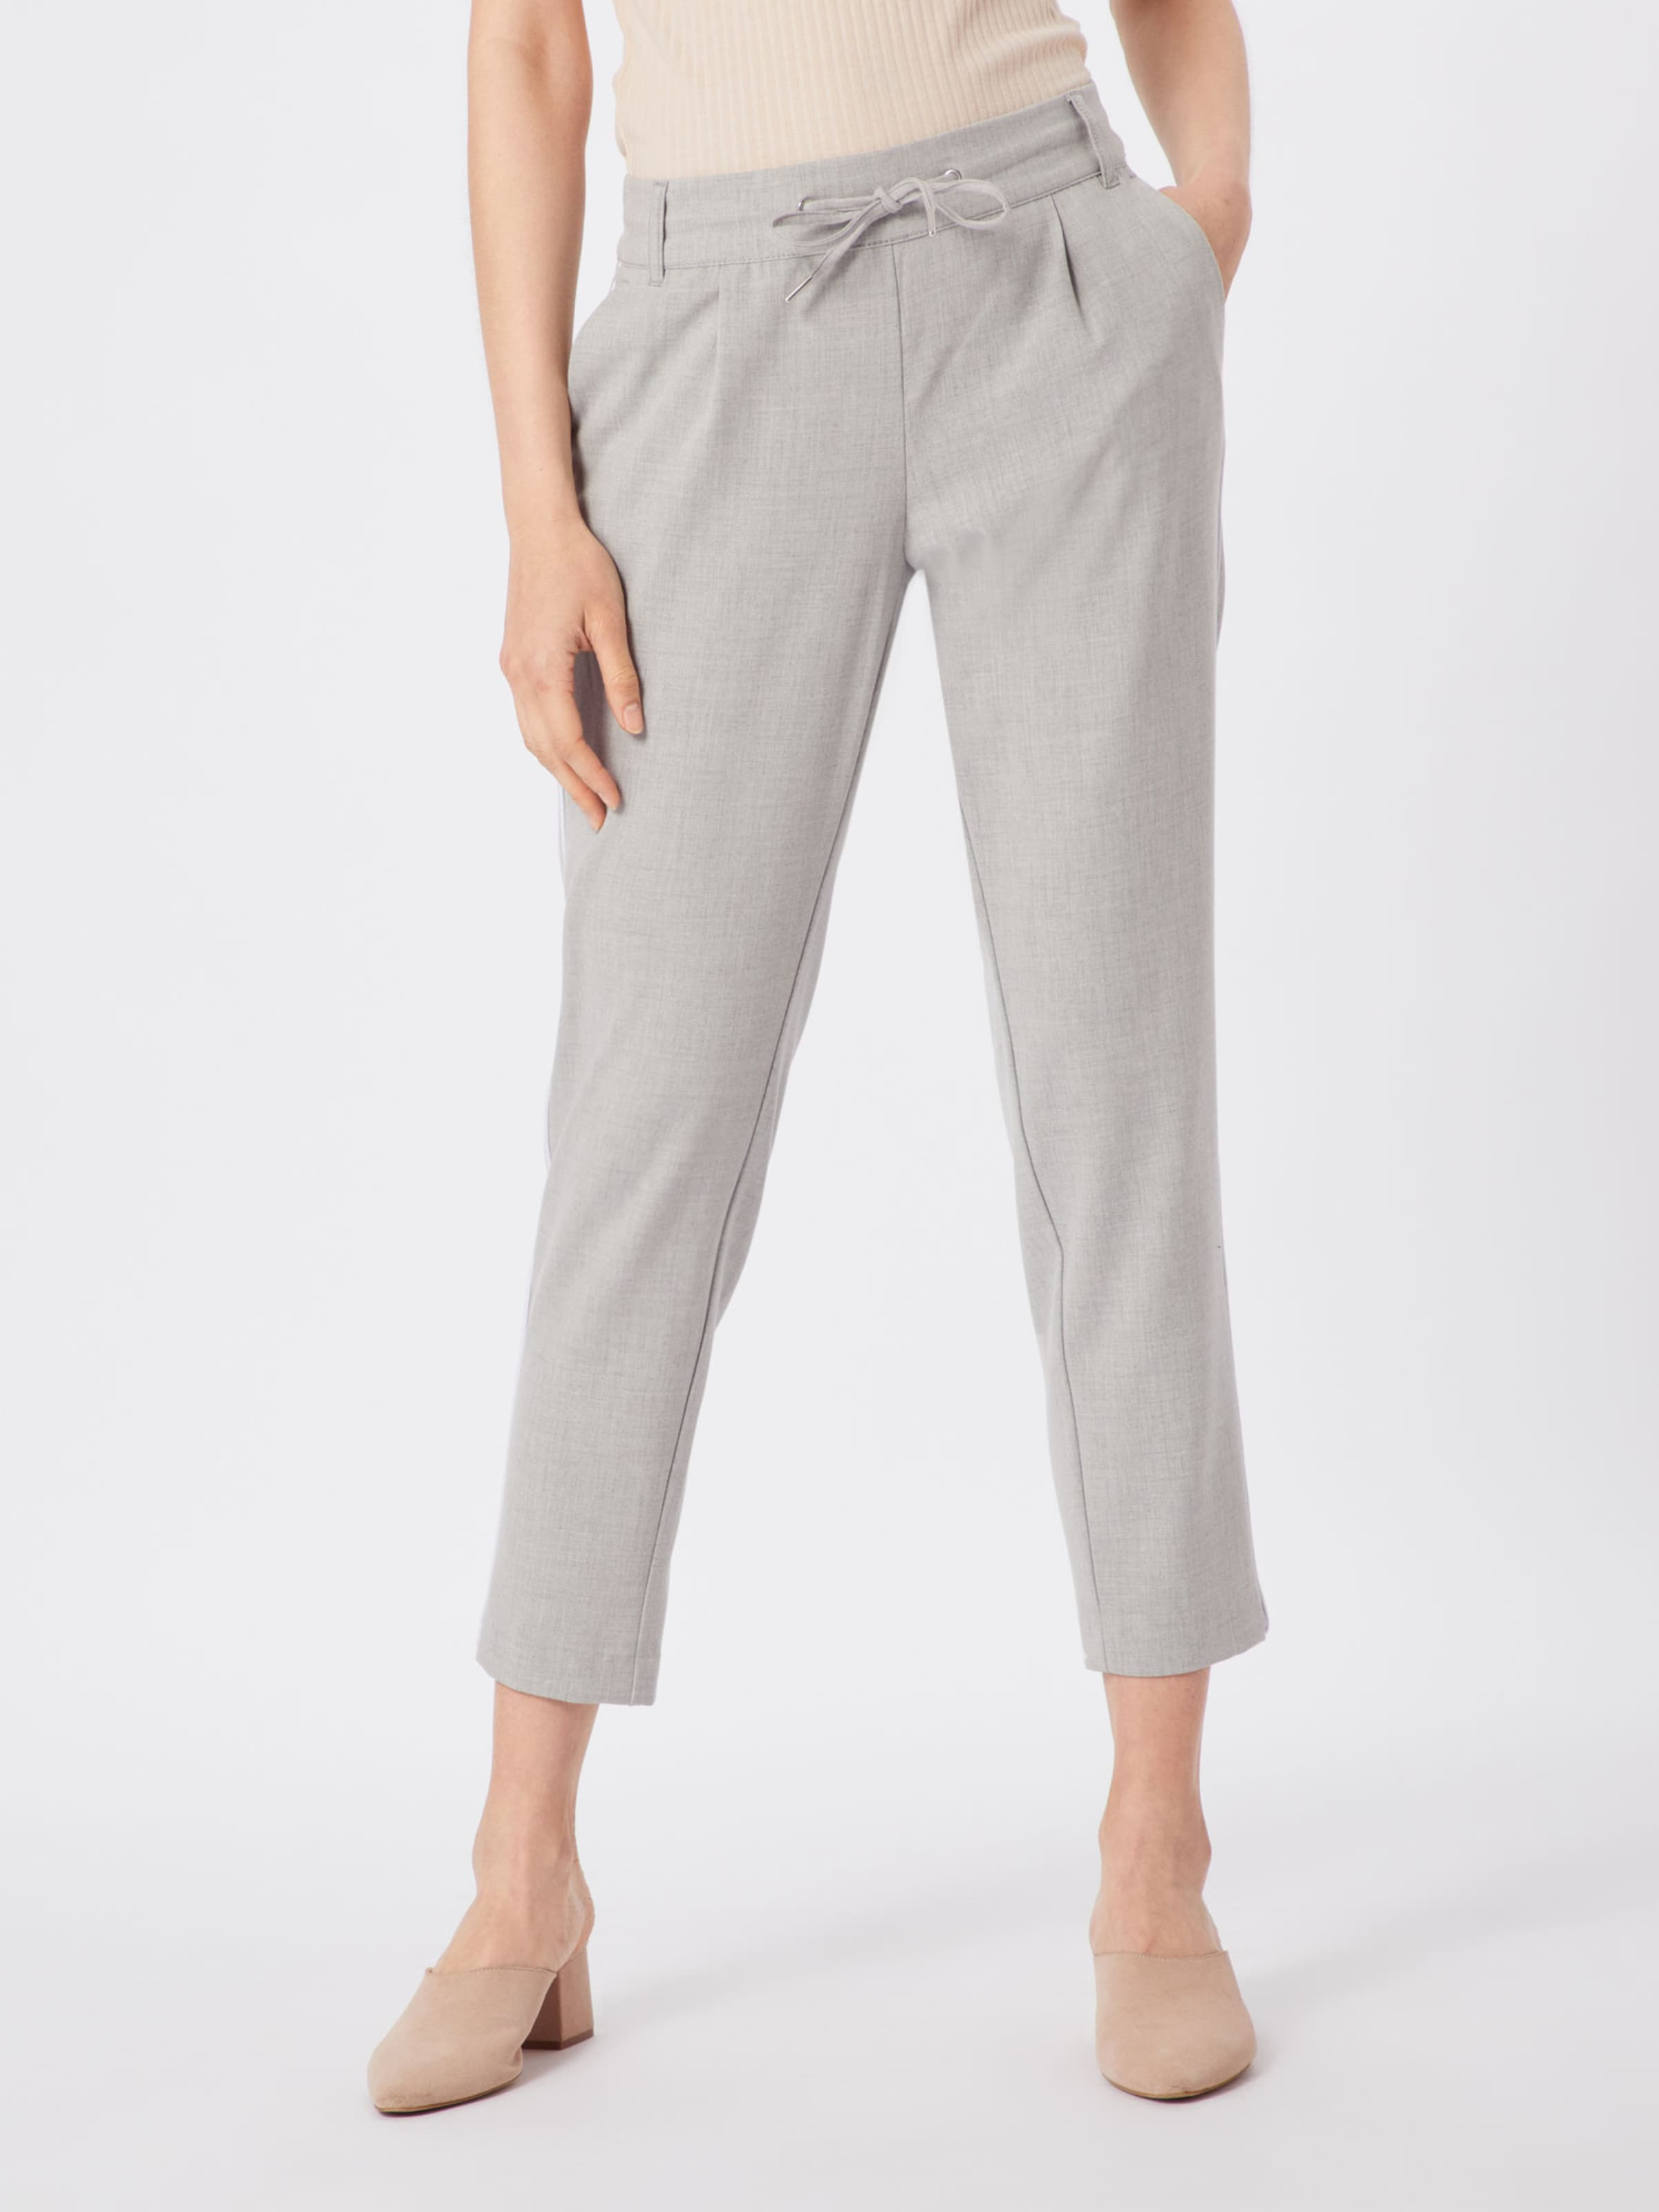 S Red Chino oliver Pantalon ClairBlanc Label En Gris QdCtrsh